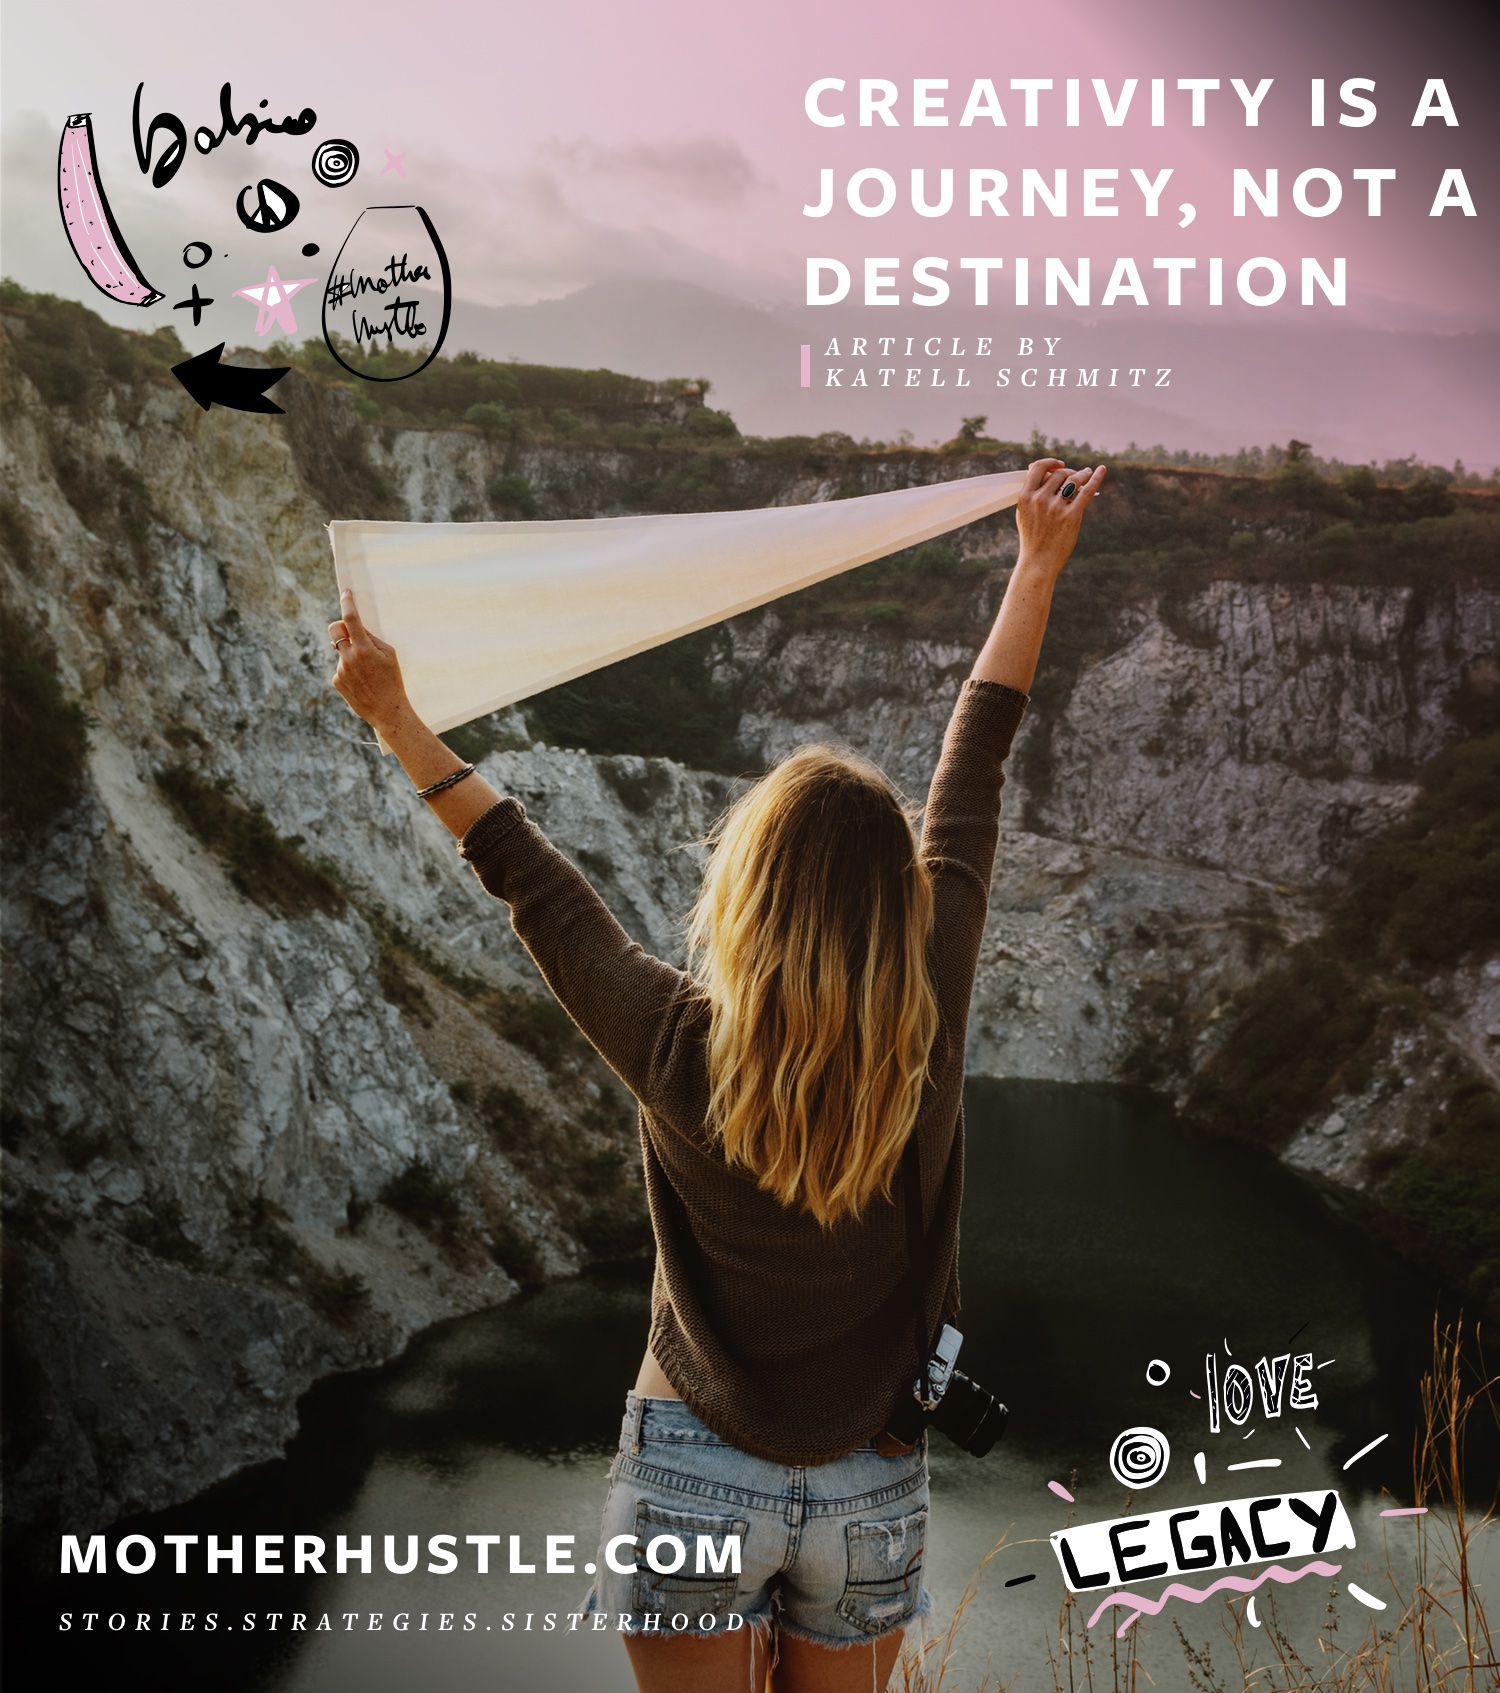 Creativity Is A Journey, Not A Destination - Katell Schmitz MotherHustle